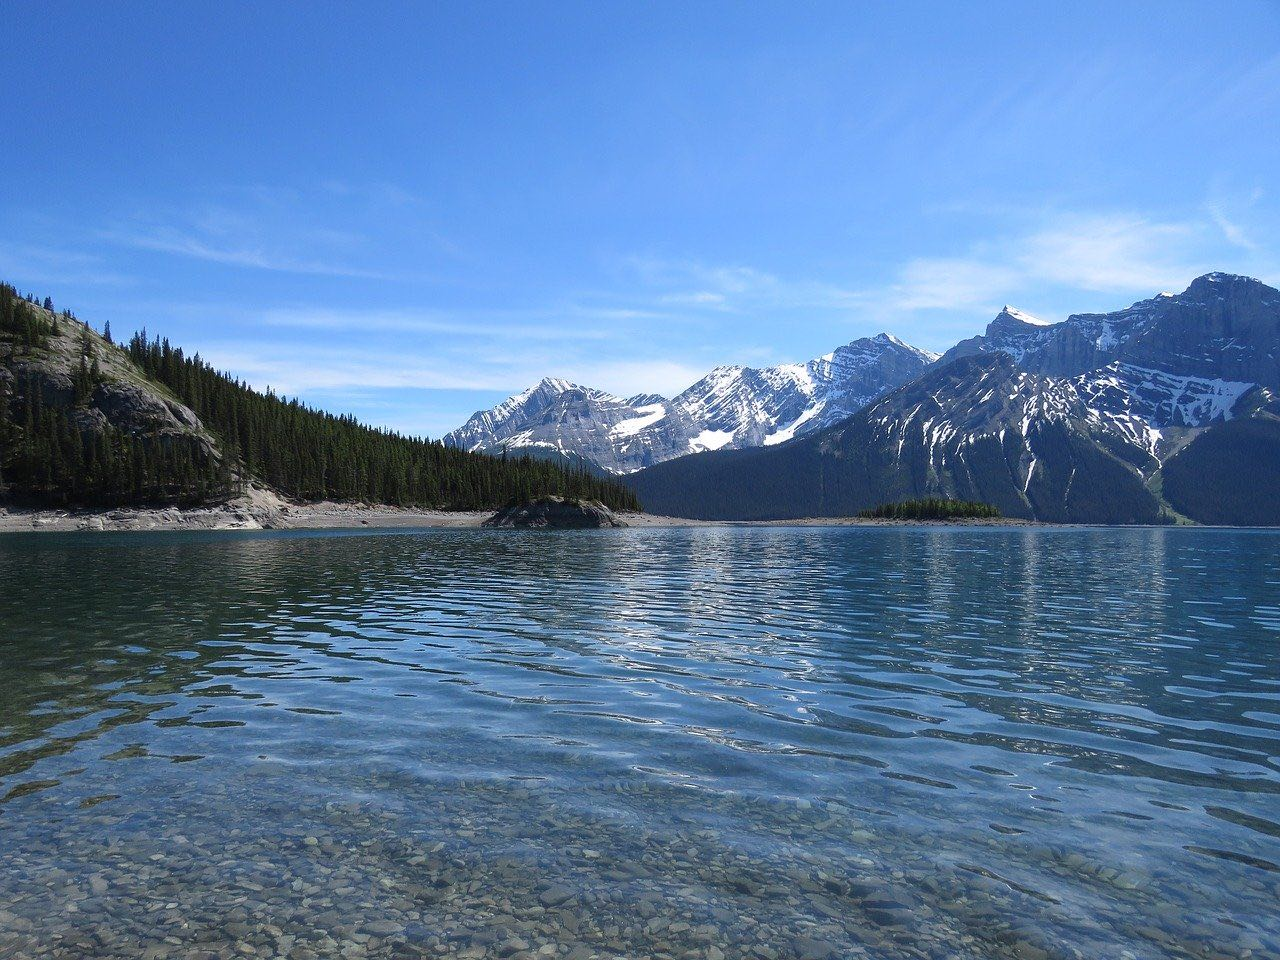 kananaskis lake_alberta canada_PD